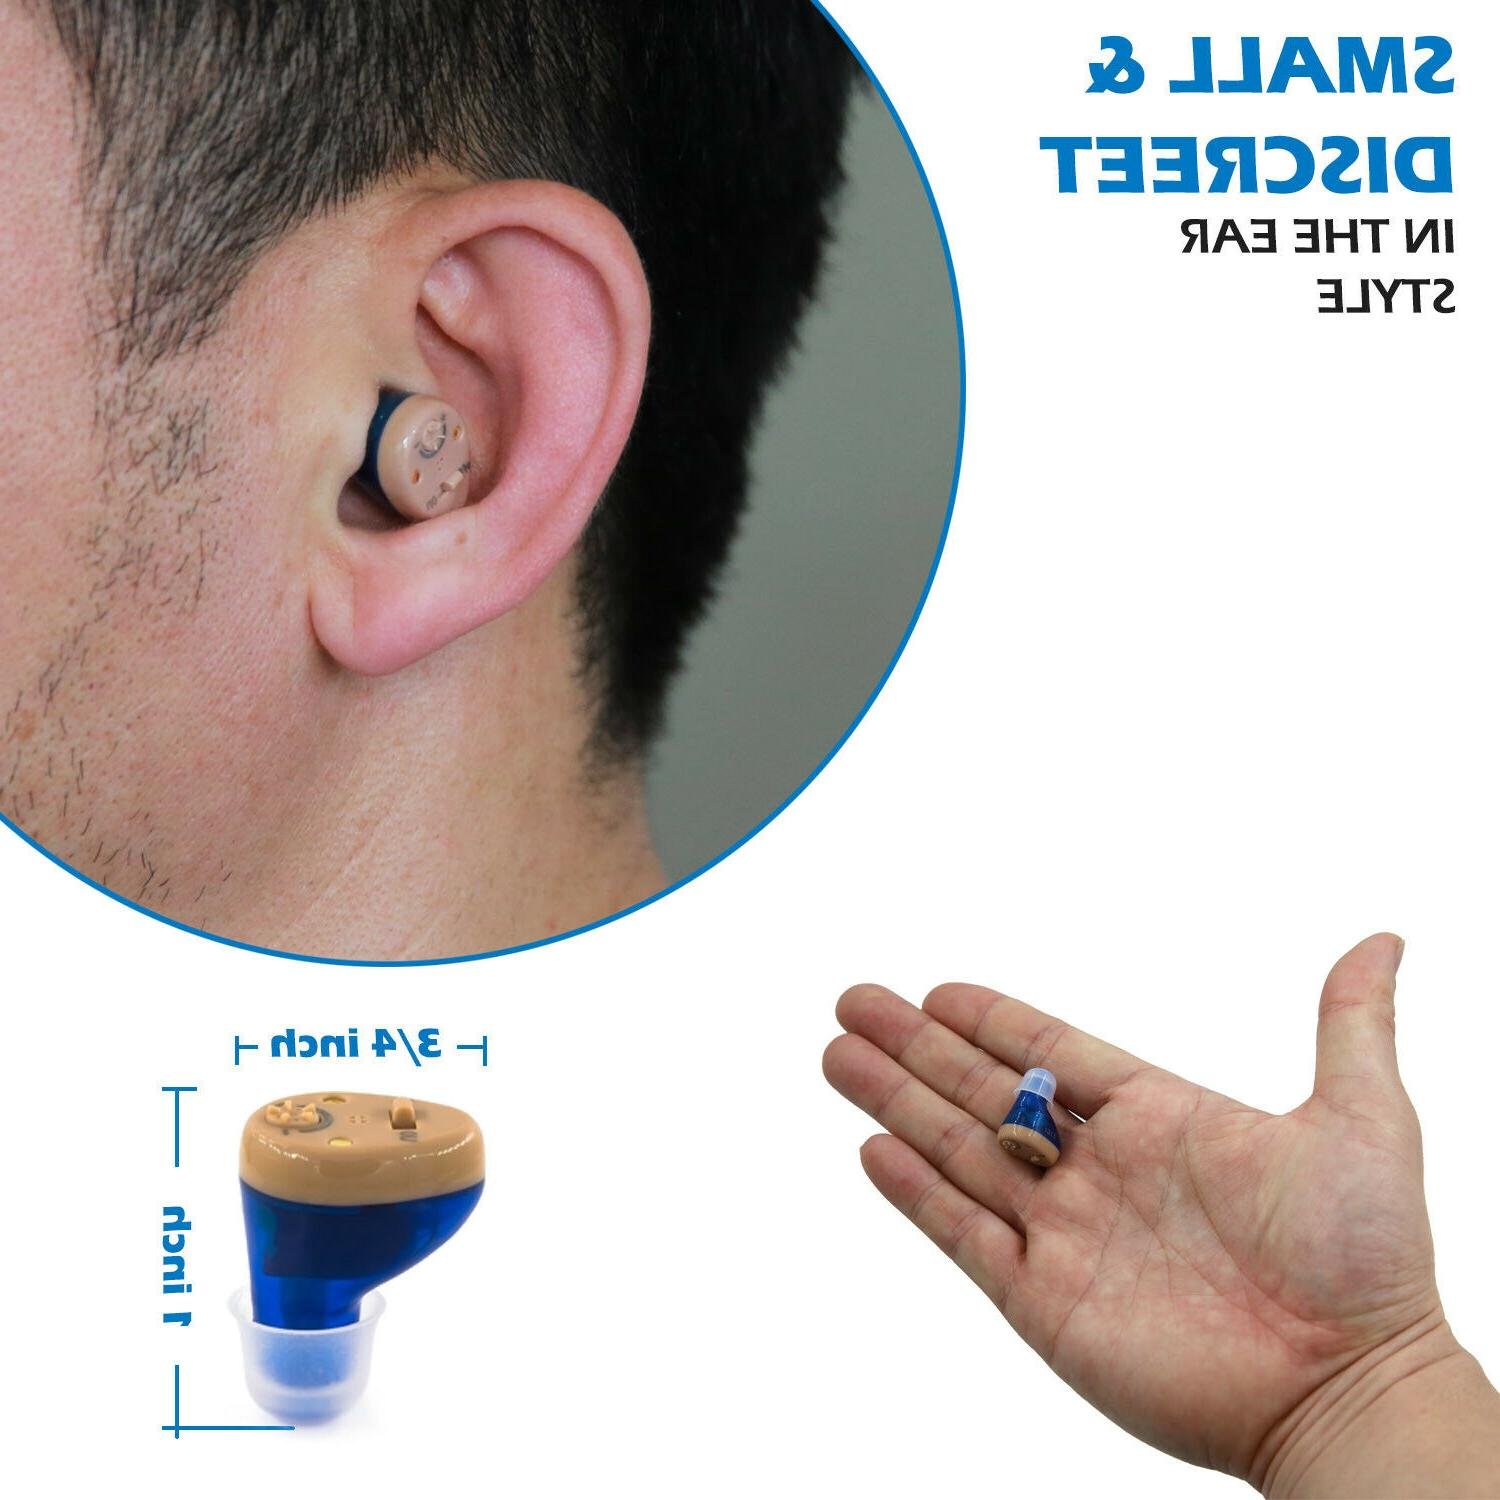 Rechargeable Hearing for -